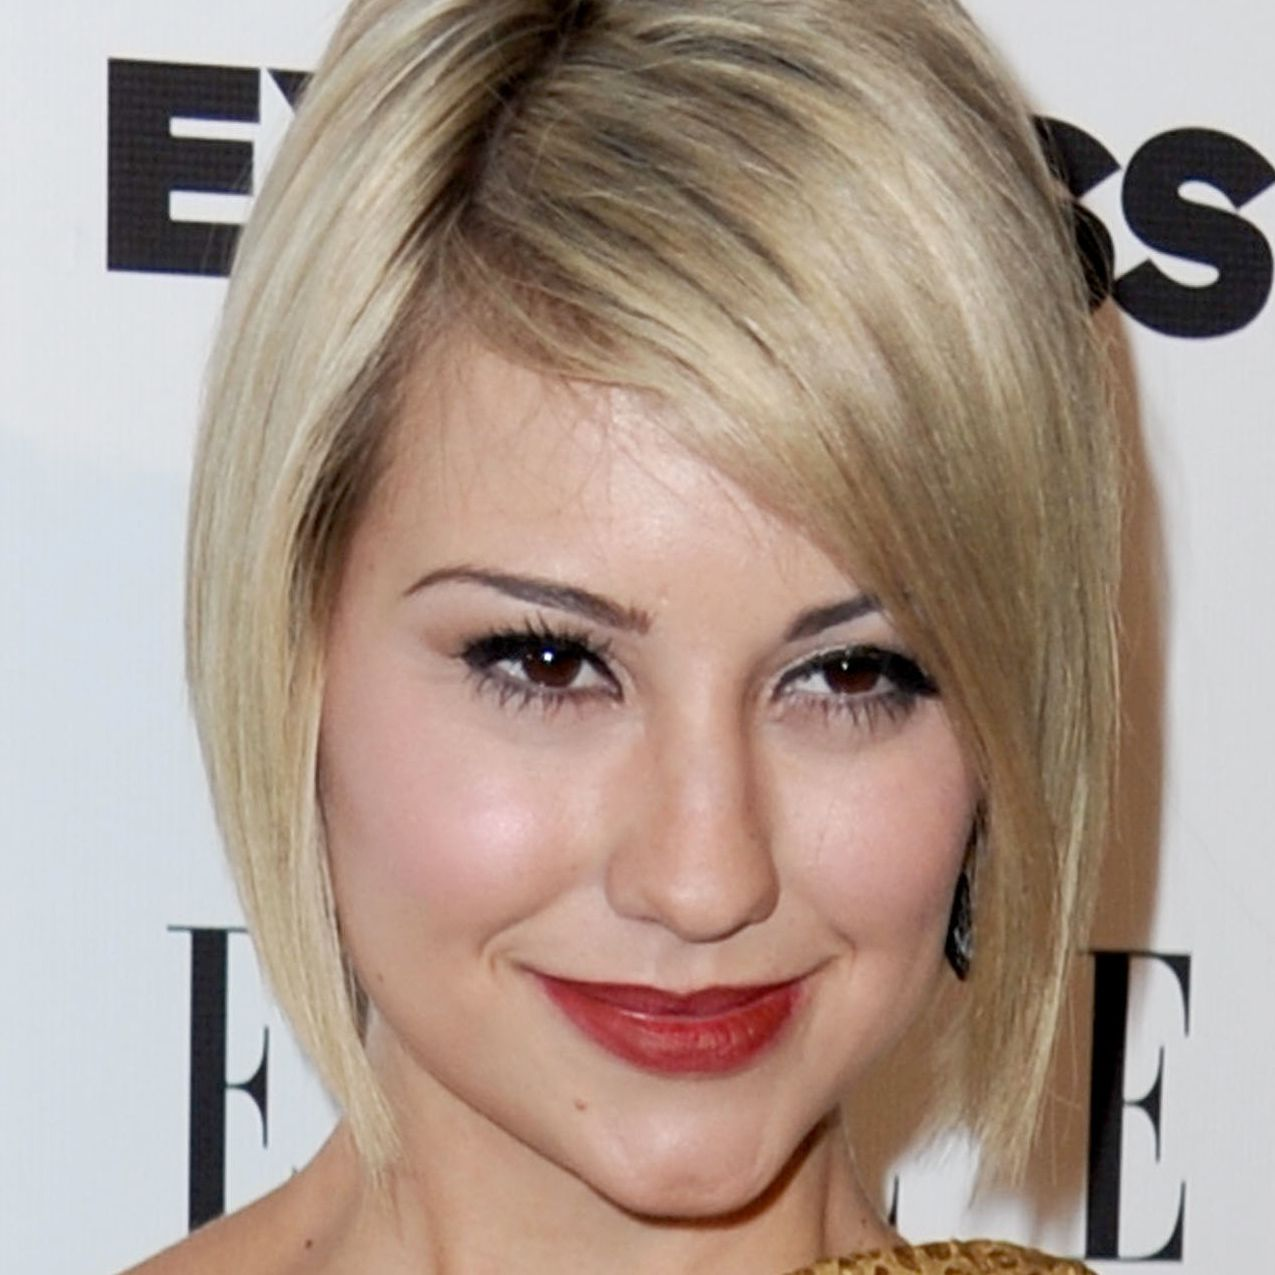 20 Amazing Hairstyles For The Oblong Face Shape